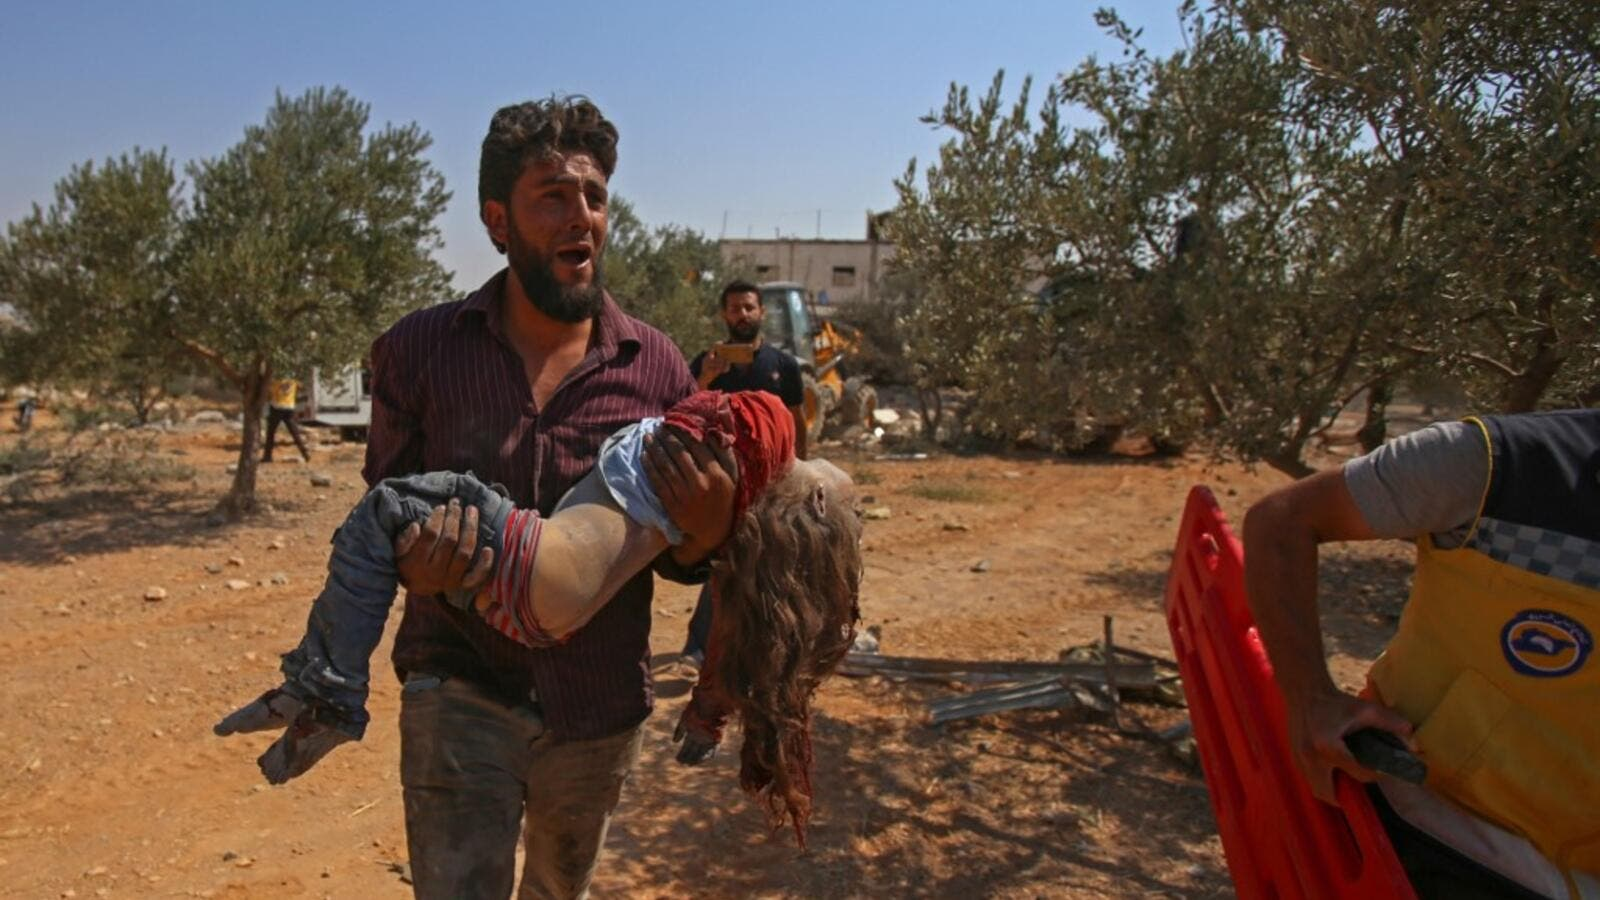 A Syrian carries the body of a child at the site of a reported regime air strike on the village of Deir Sharqi on the eastern outskirts of Maaret al-Numan in Syria's northern province of Idlib on August 17, 2019. (AFP/ File Photo)